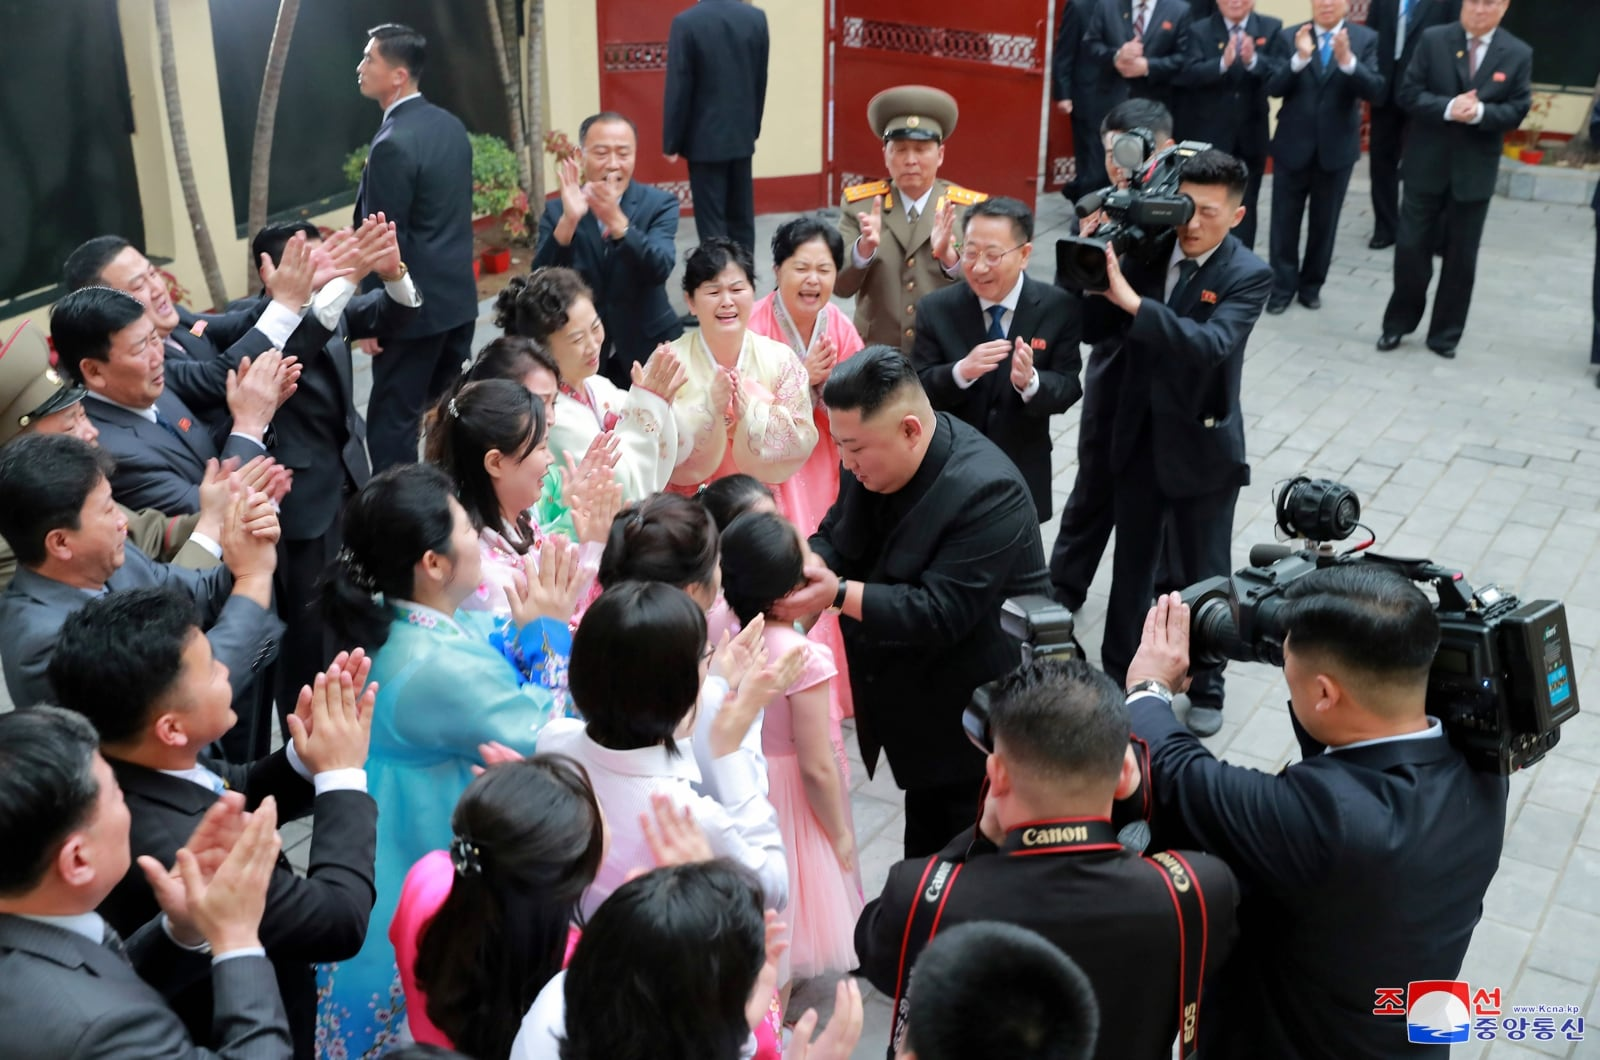 North Korea's leader Kim Jong Un visits the North Korean Embassy in Hanoi, Vietnam February 26, 2019 in this photo released by North Korea's Korean Central News Agency (KCNA). KCNA via REUTERS